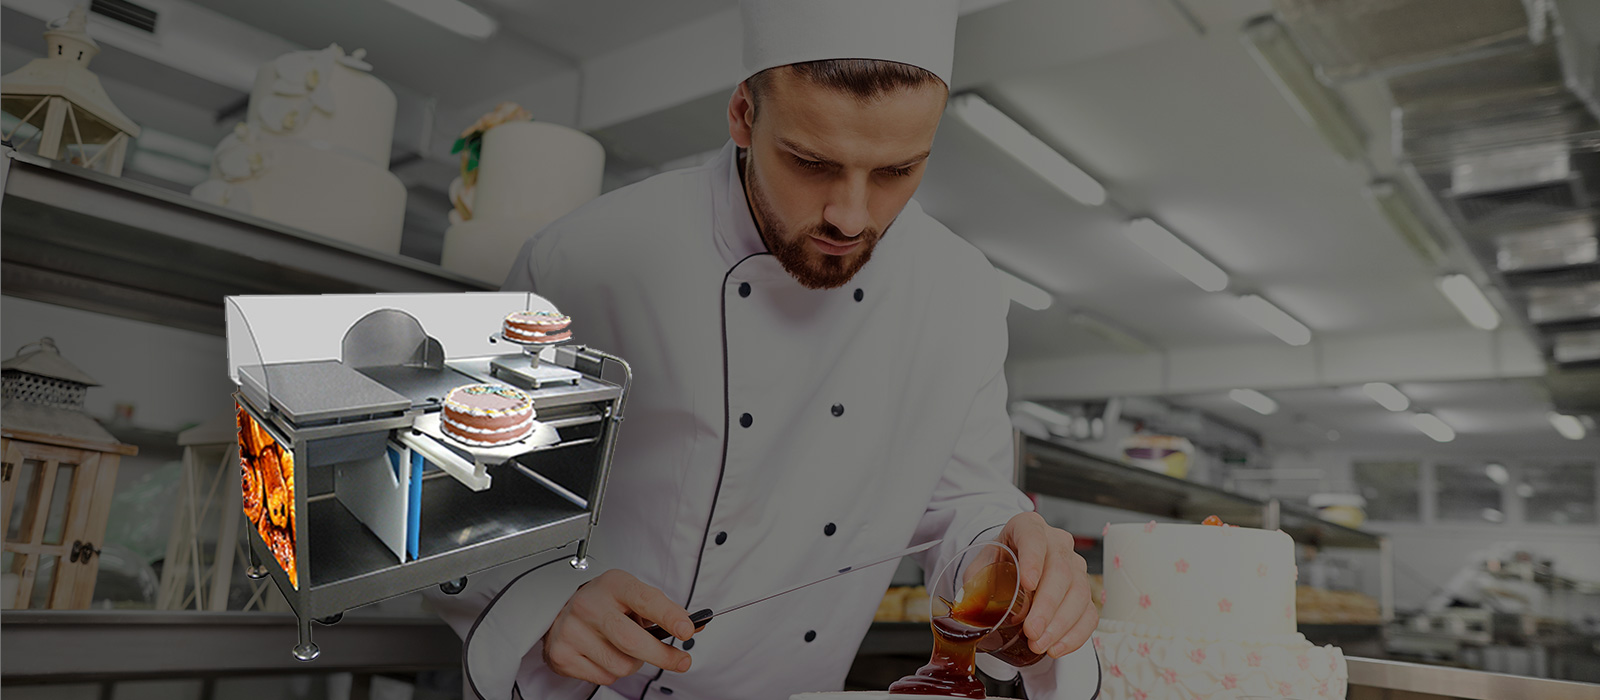 Slider background image with cake decorating station. Chef in the background